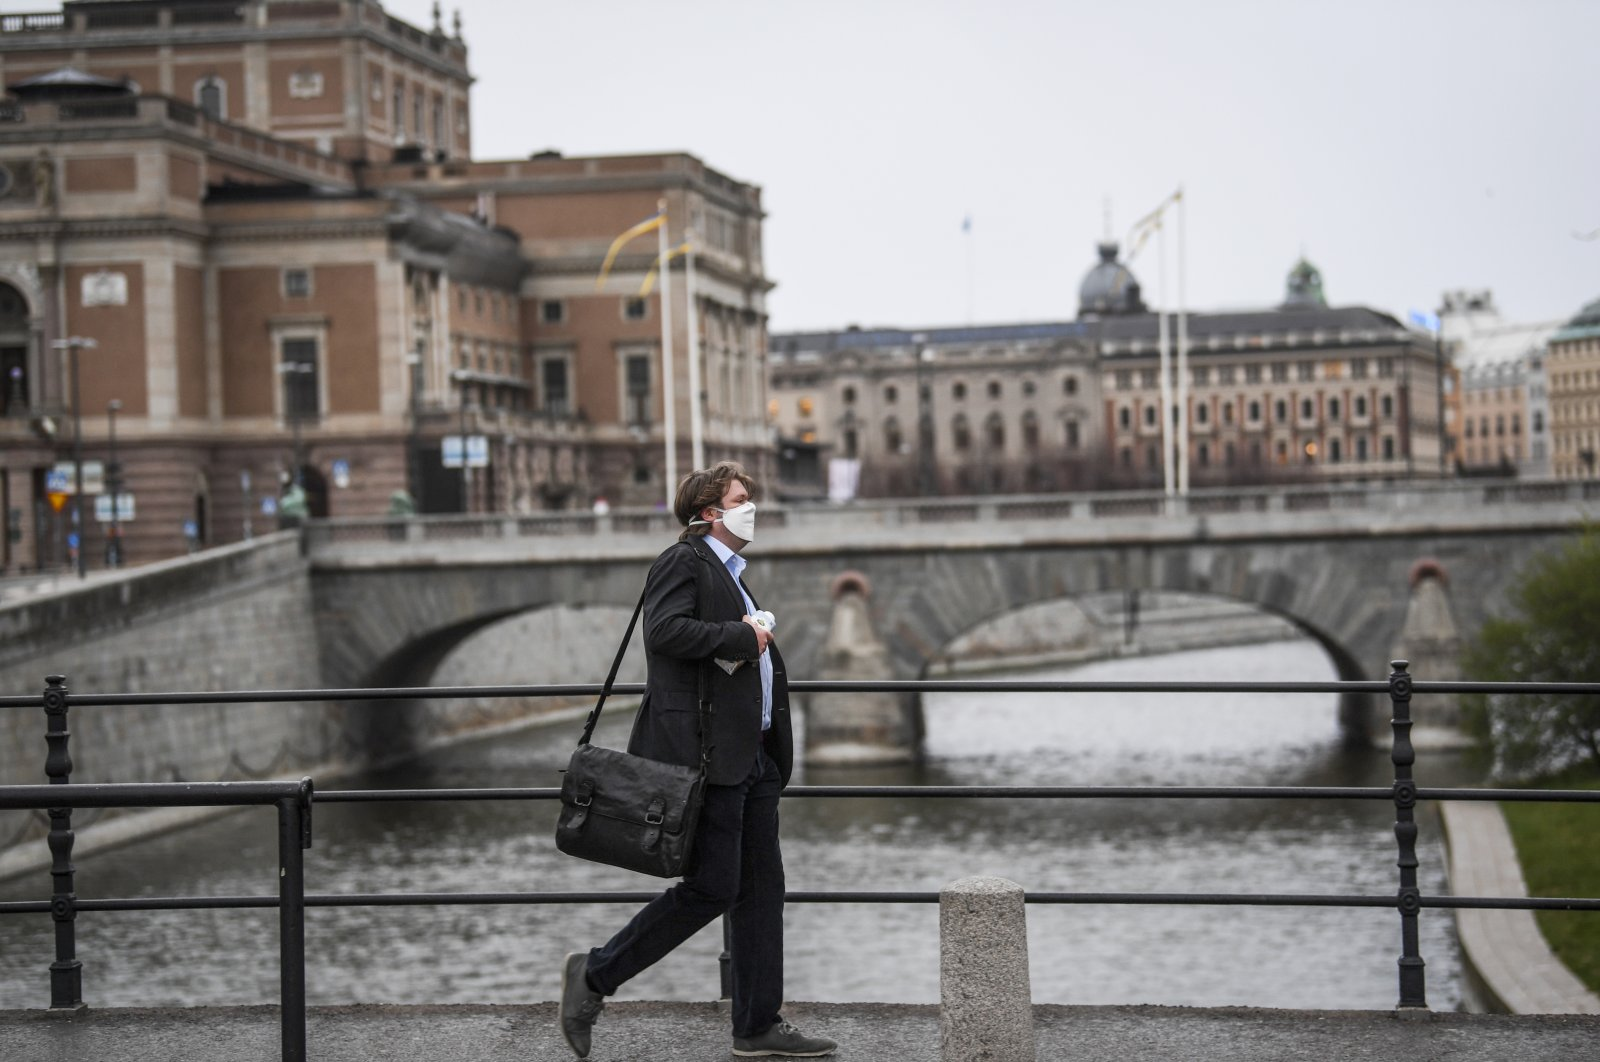 A man wearing a protective mask walks in the rain past the Royal Swedish Opera (at left) in Stockholm, Sweden, 27 April 2020, amid the coronavirus disease (COVID-19) outbreak.  (EPA-EFE Photo)